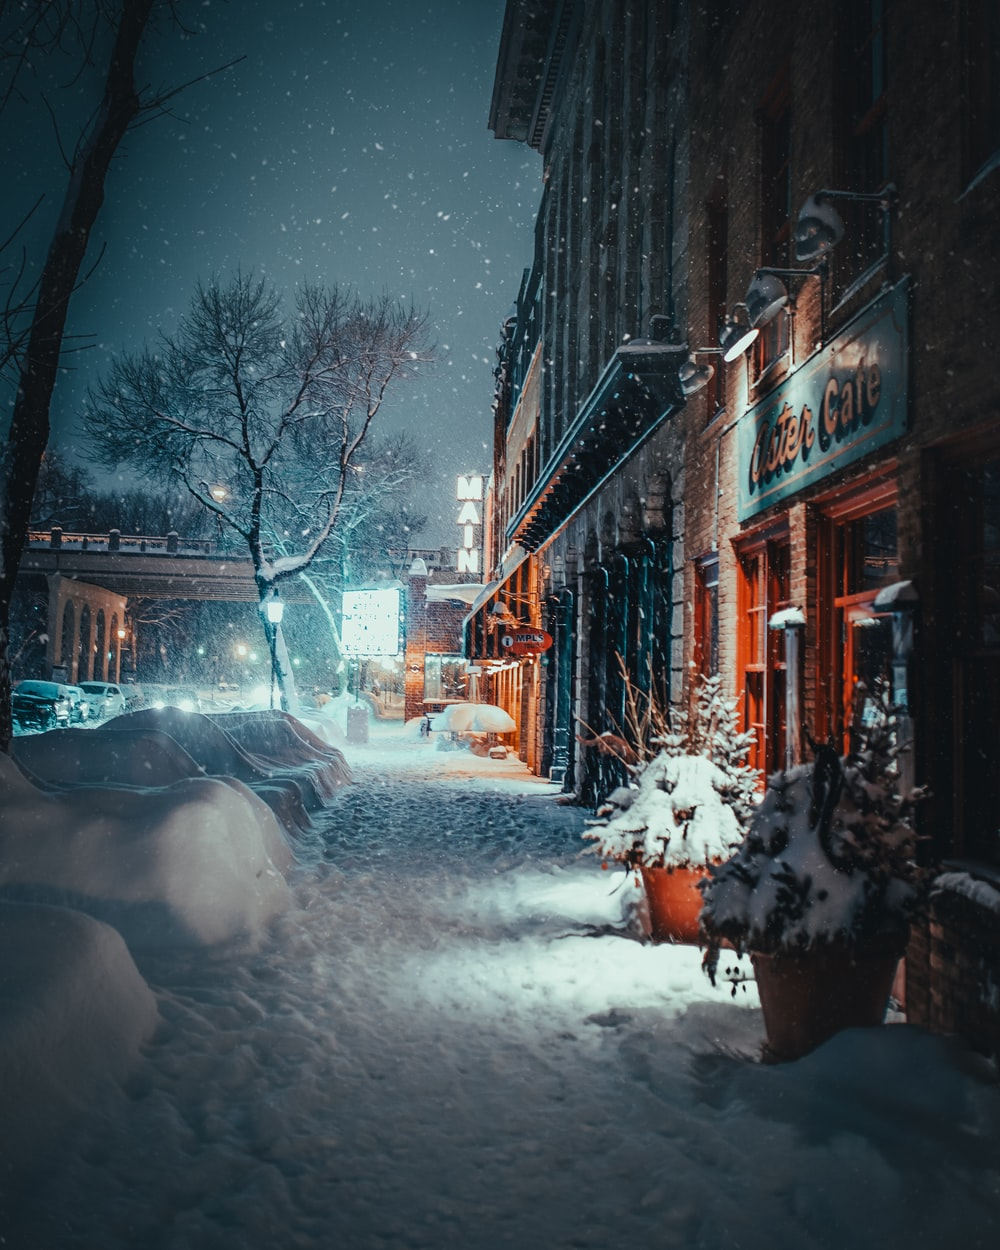 snow covered plant and road in front of cafe